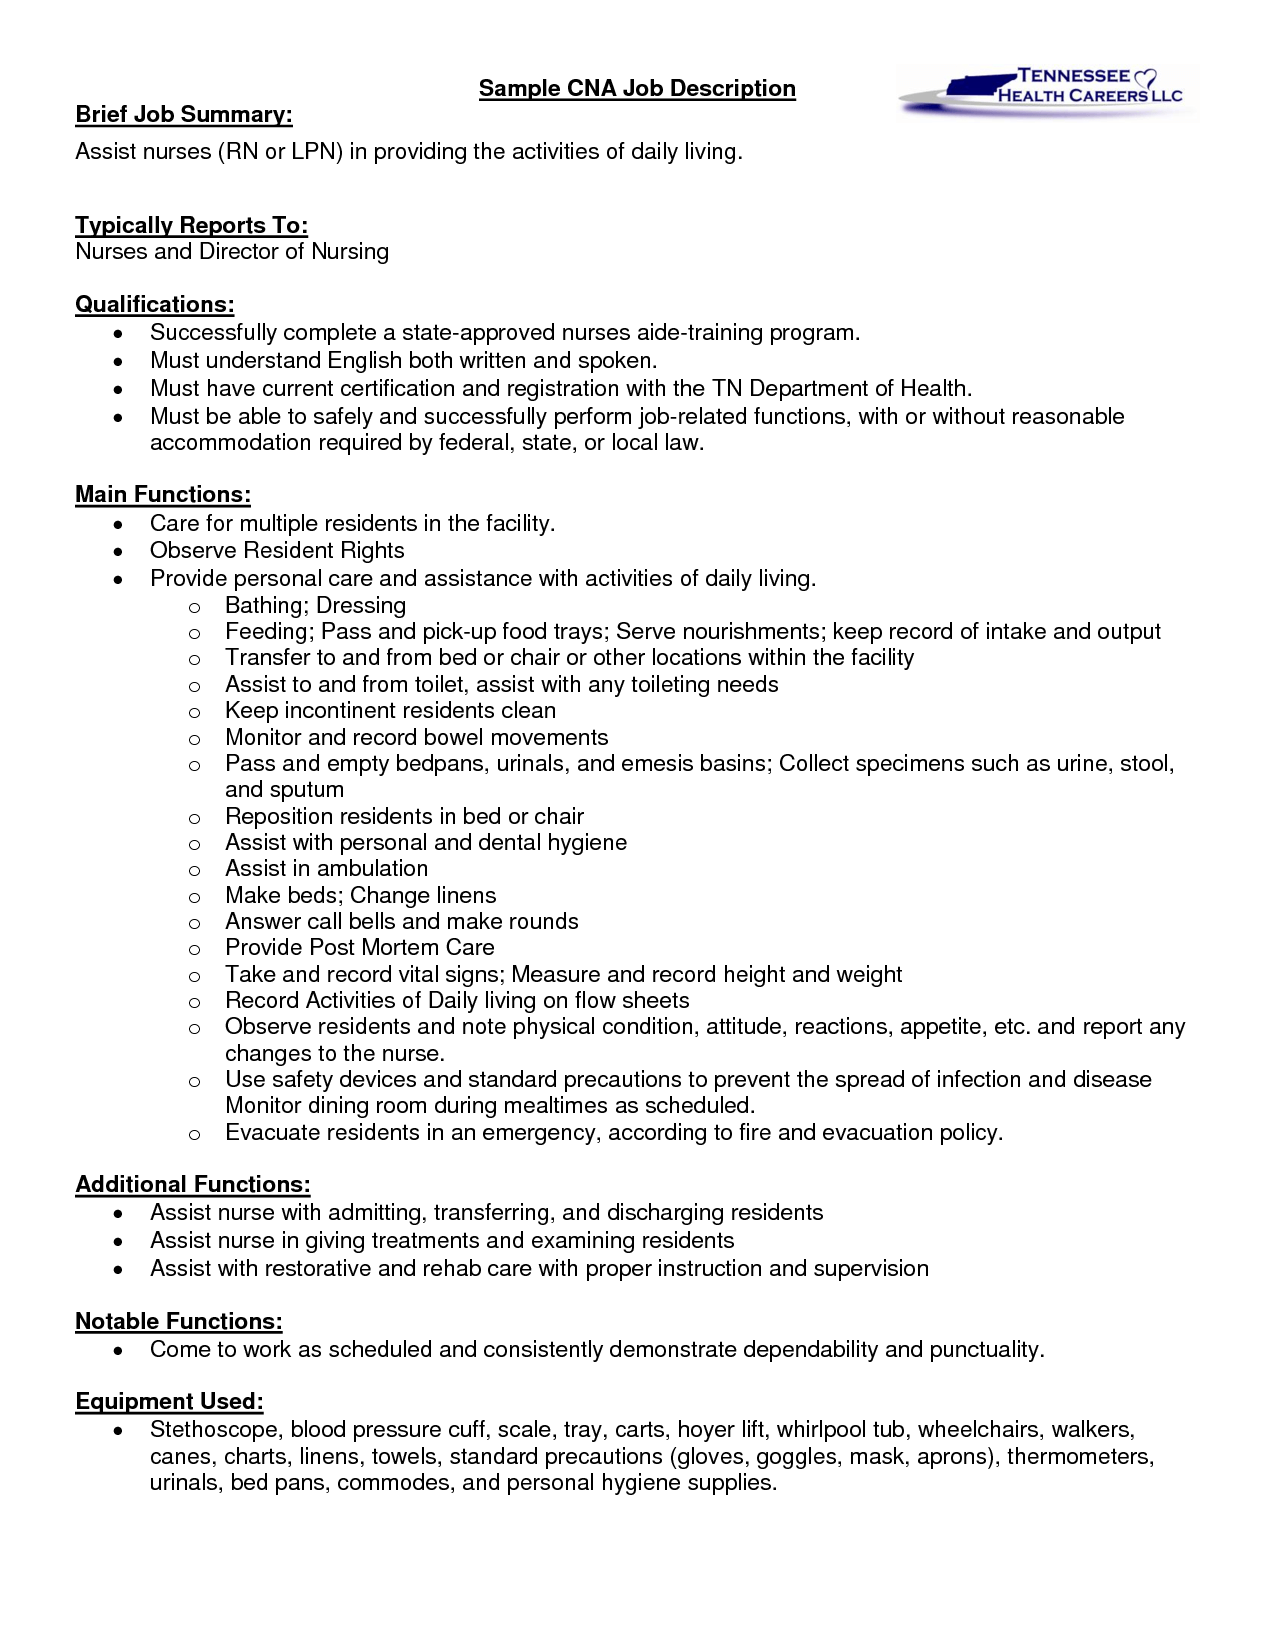 Resume Sample Resume Detailed Job Description Nurses rn duties resume cv cover letter job description assistant controller sample entry critical care nurse description